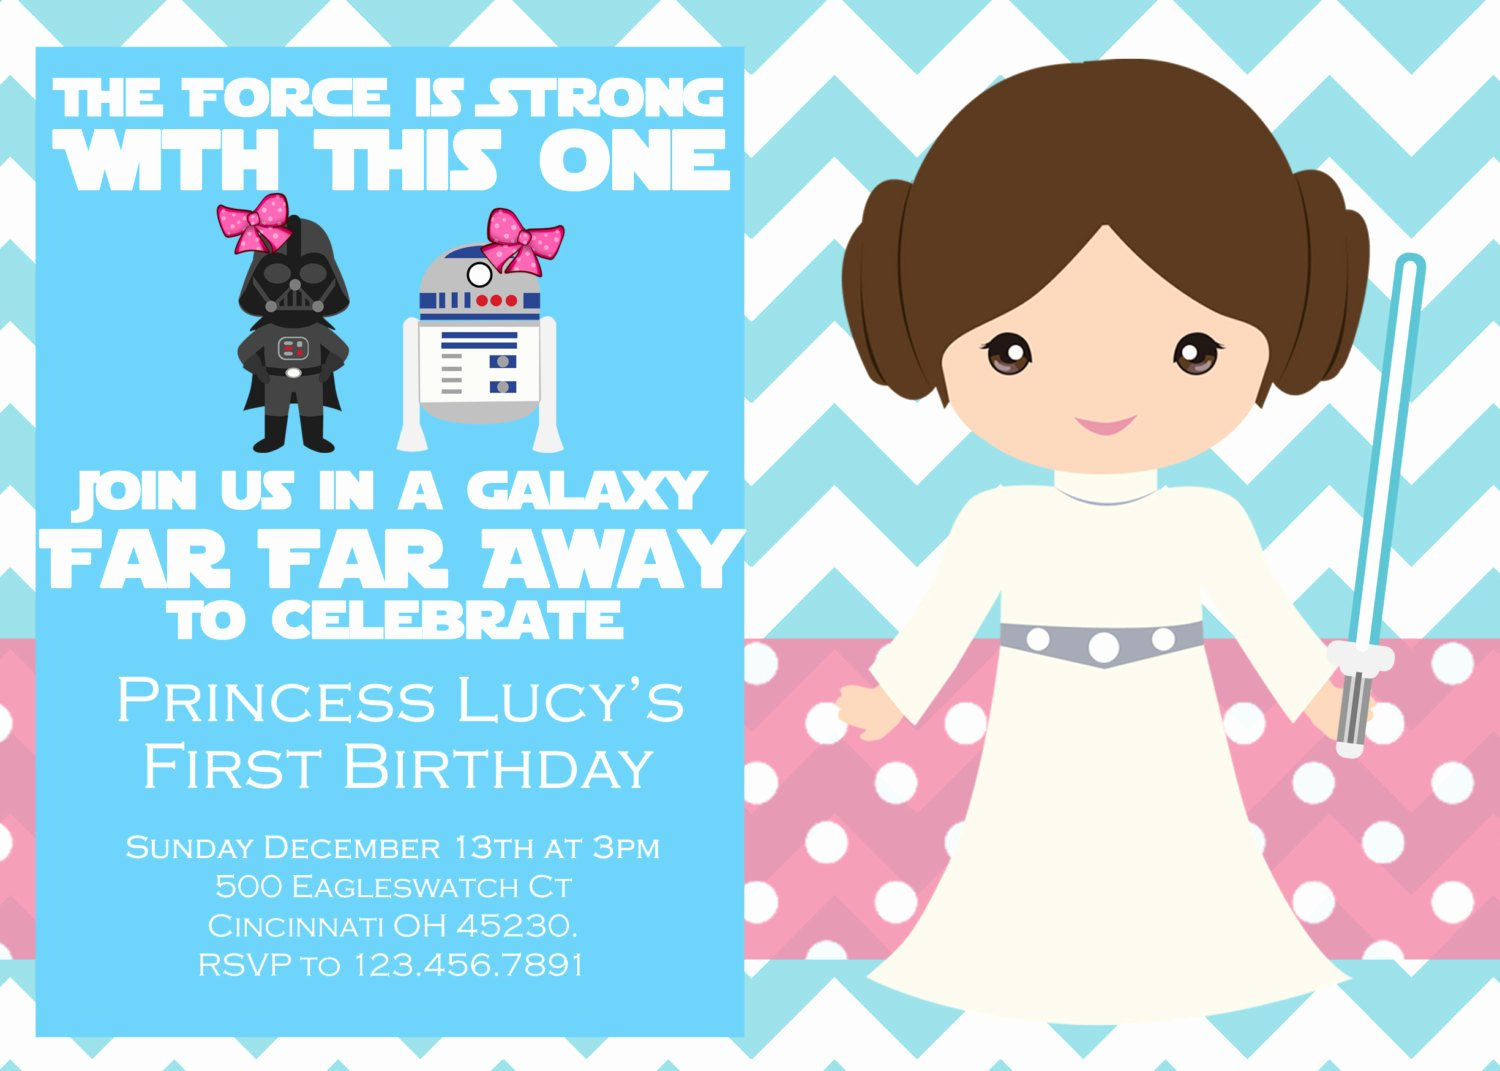 Star Wars Birthday Party Invitation Beautiful Girl Star Wars Birthday Party Invitation by Emilypowelldesigns